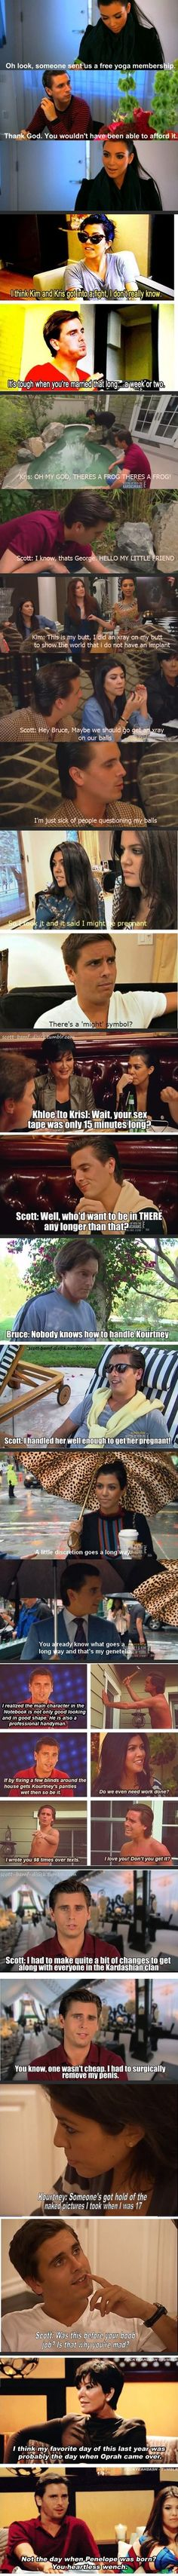 Scott Disick- The only good thing about the Kardashians